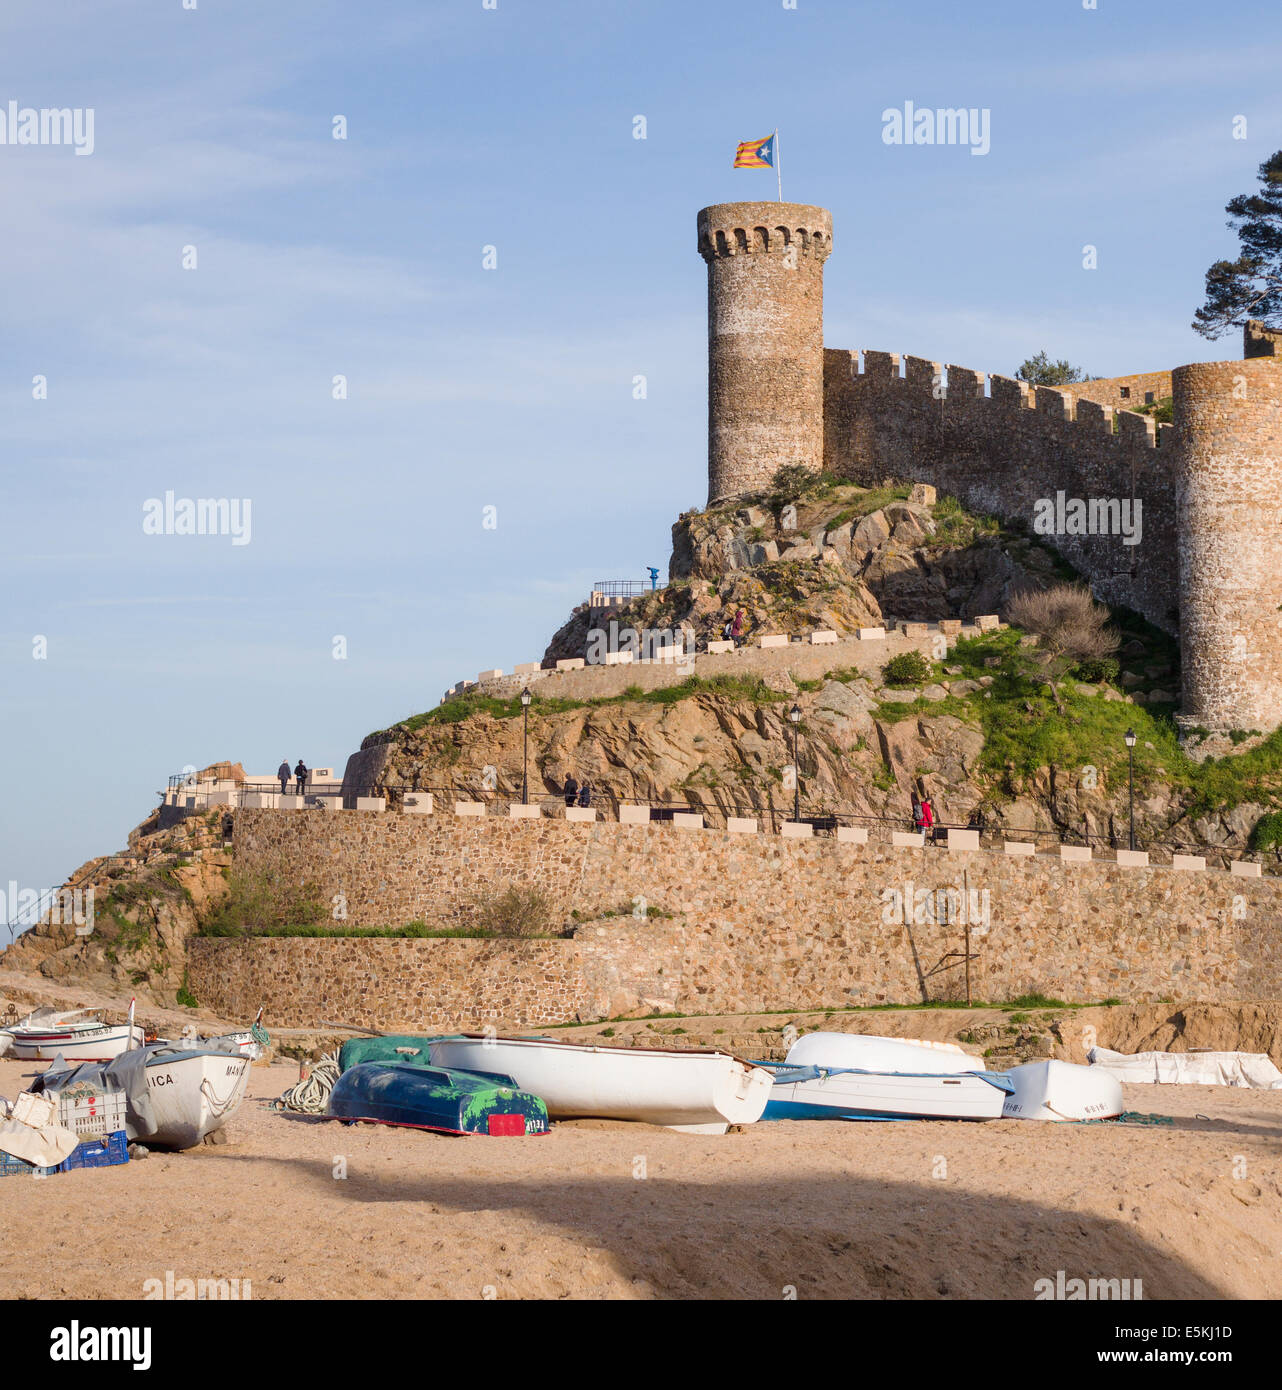 Fortress of Tossa de Mar topped by a Catalonian Flag, boats belo. The massive stone defensive wall and tower of - Stock Image